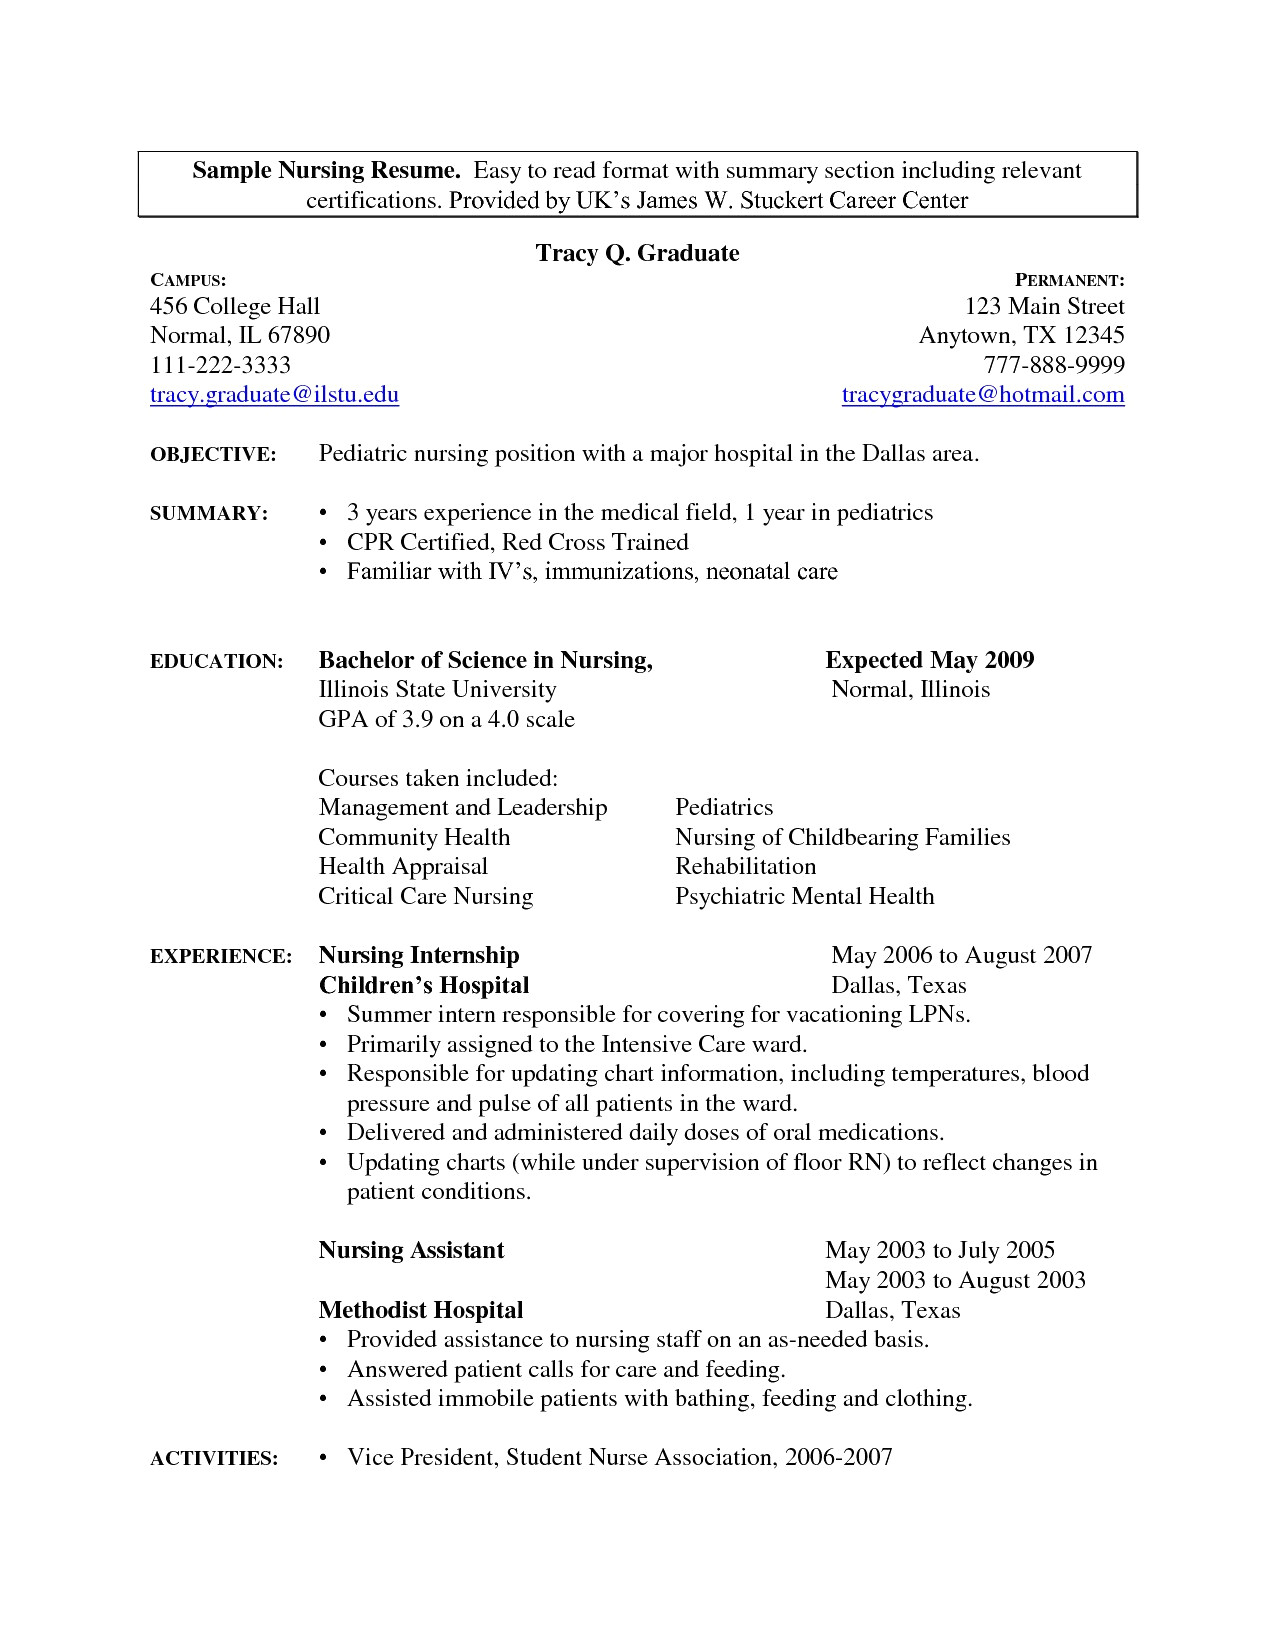 Paralegal Job Description Resume - 39 Awesome Sample Resume Skills